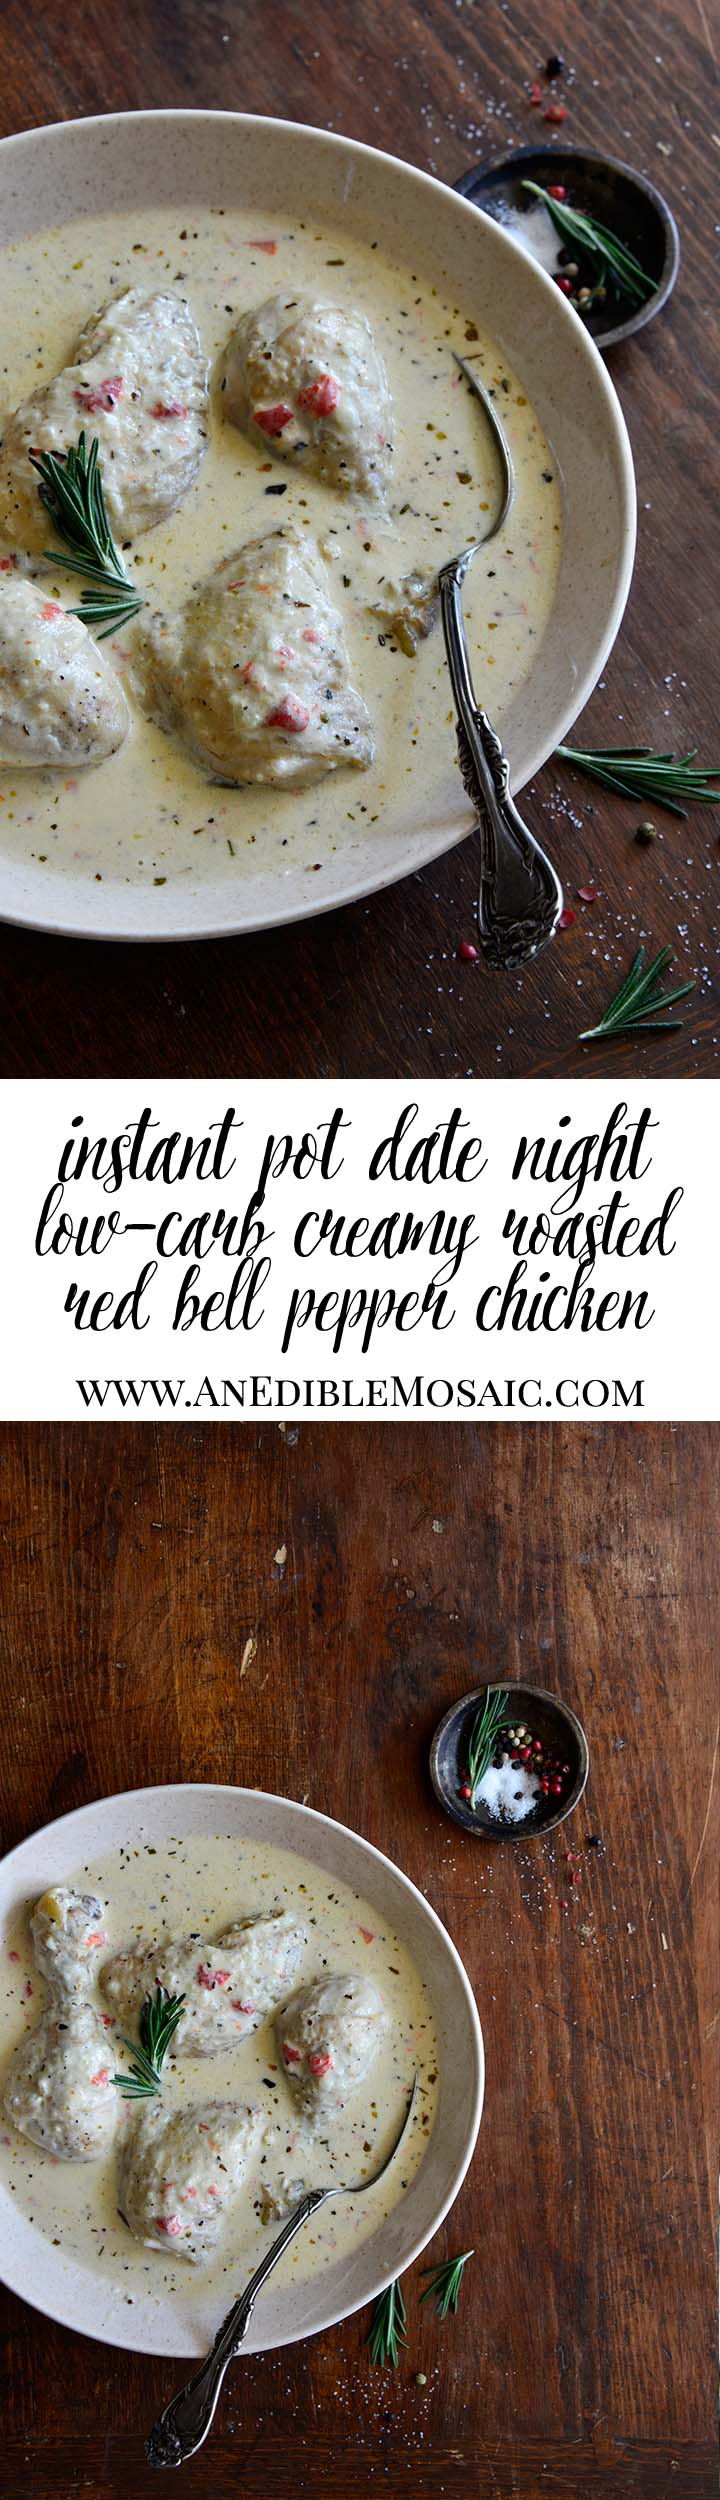 Instant Pot Date Night Low-Carb Creamy Roasted Red Bell Pepper Chicken Long Pin